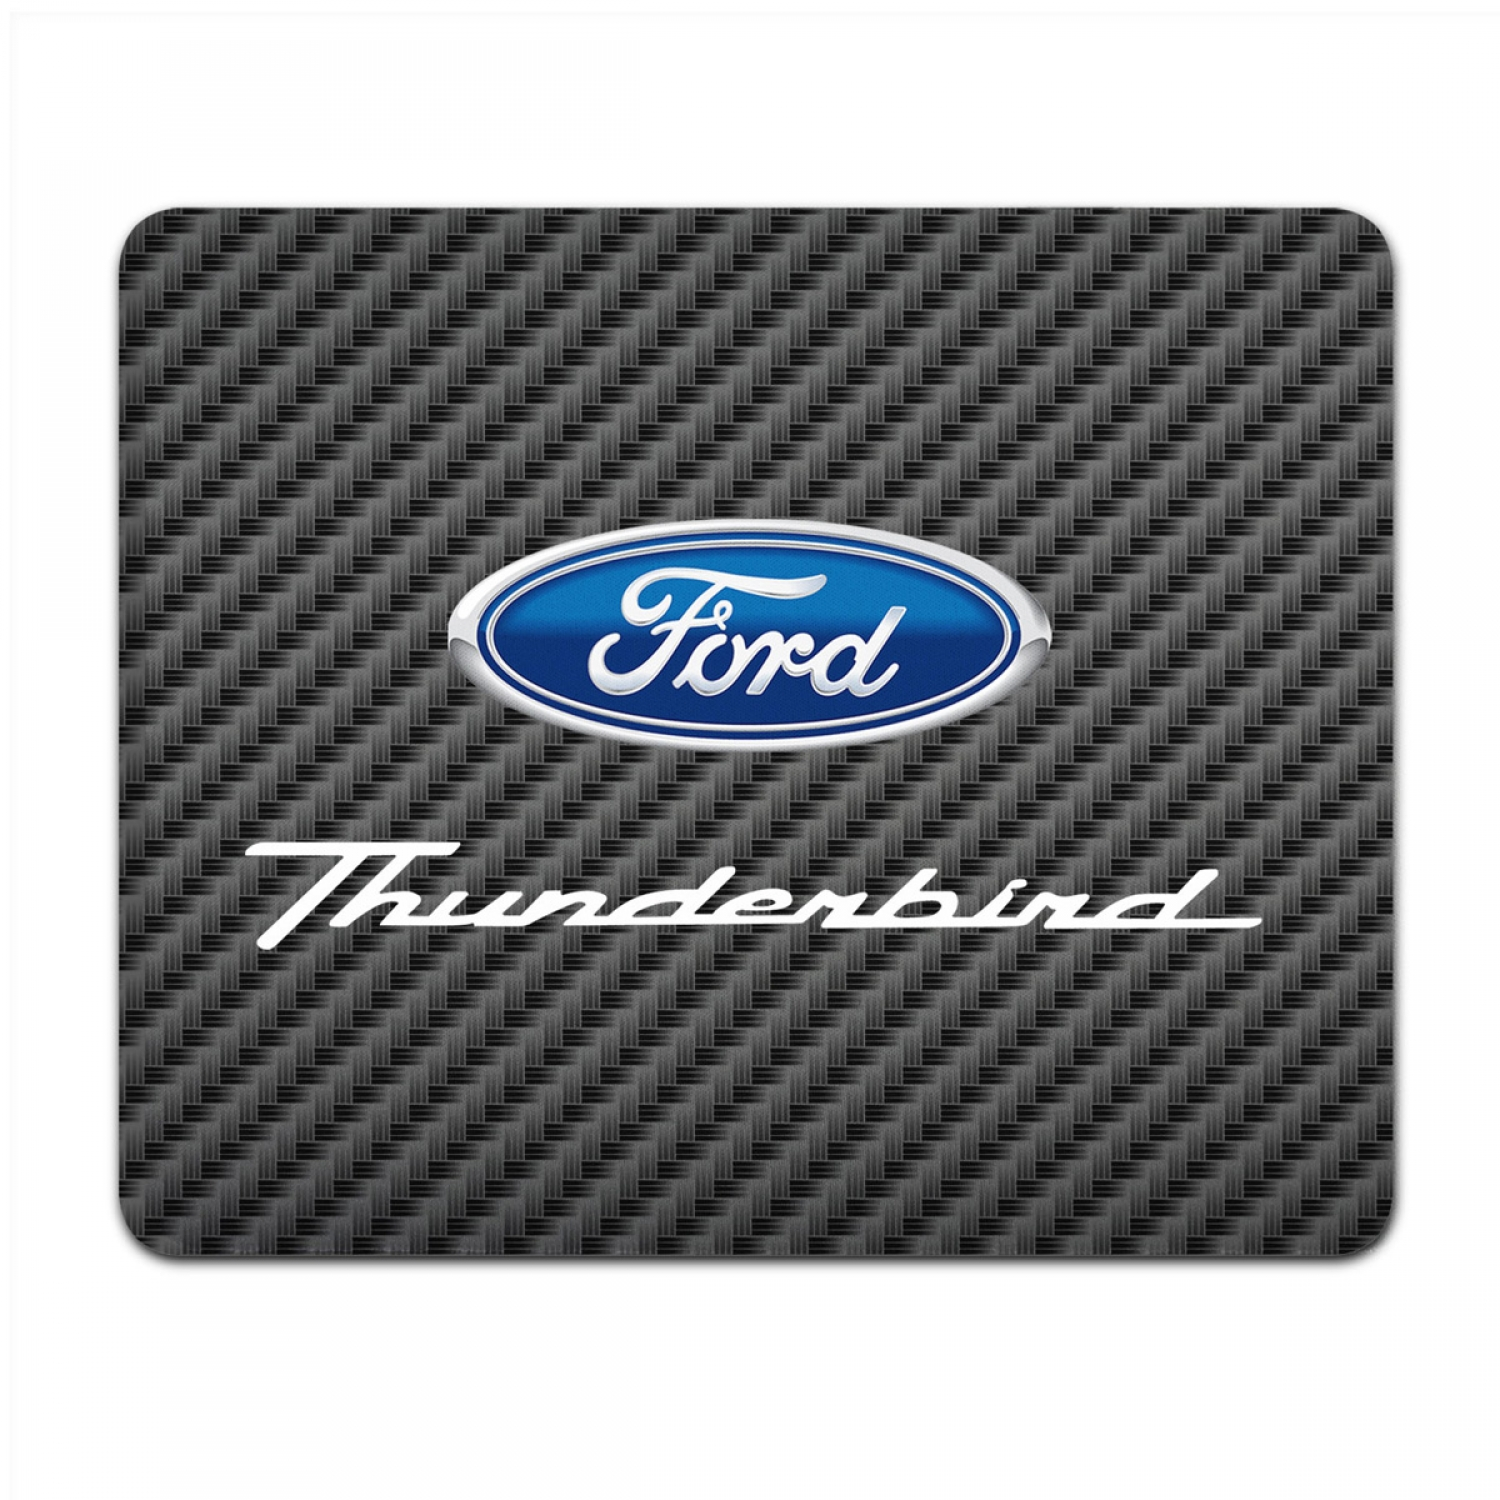 Ford Thunderbird Black Carbon Fiber Texture Graphic PC Mouse Pad